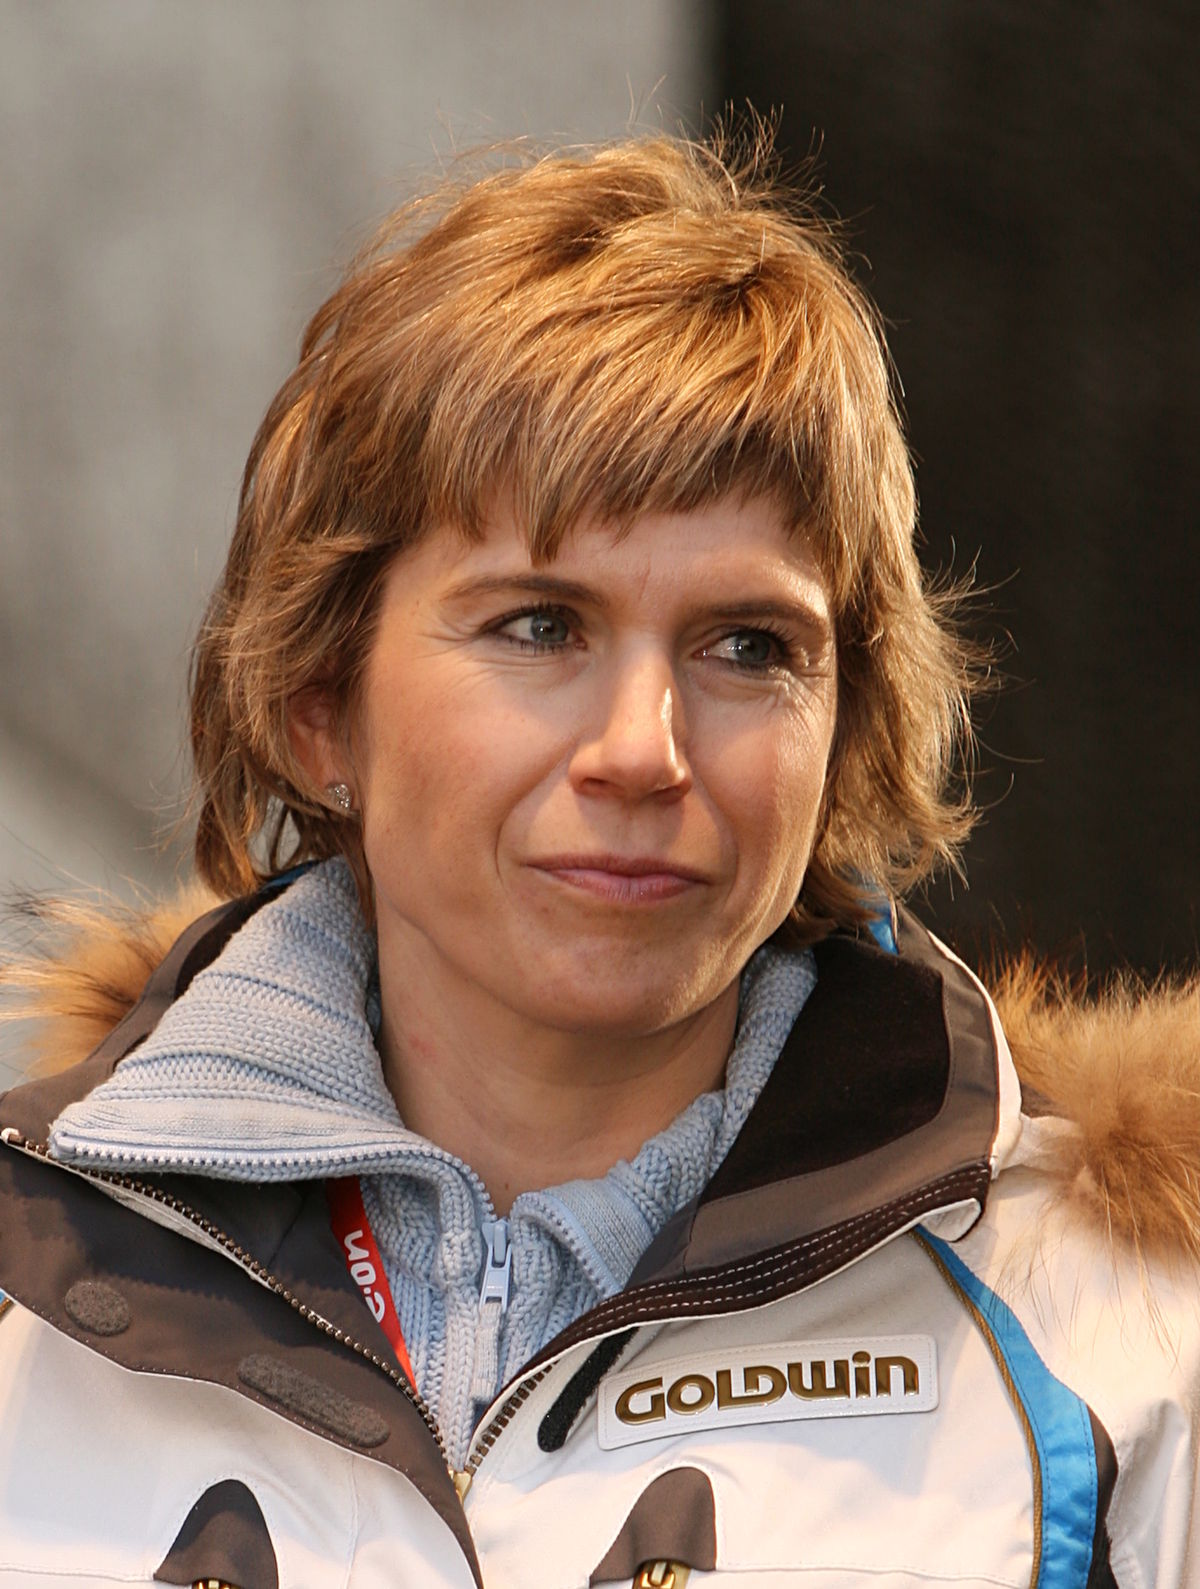 Kulakova Galina Alekseevna: biography, photos and interesting facts about the Olympic champion 85